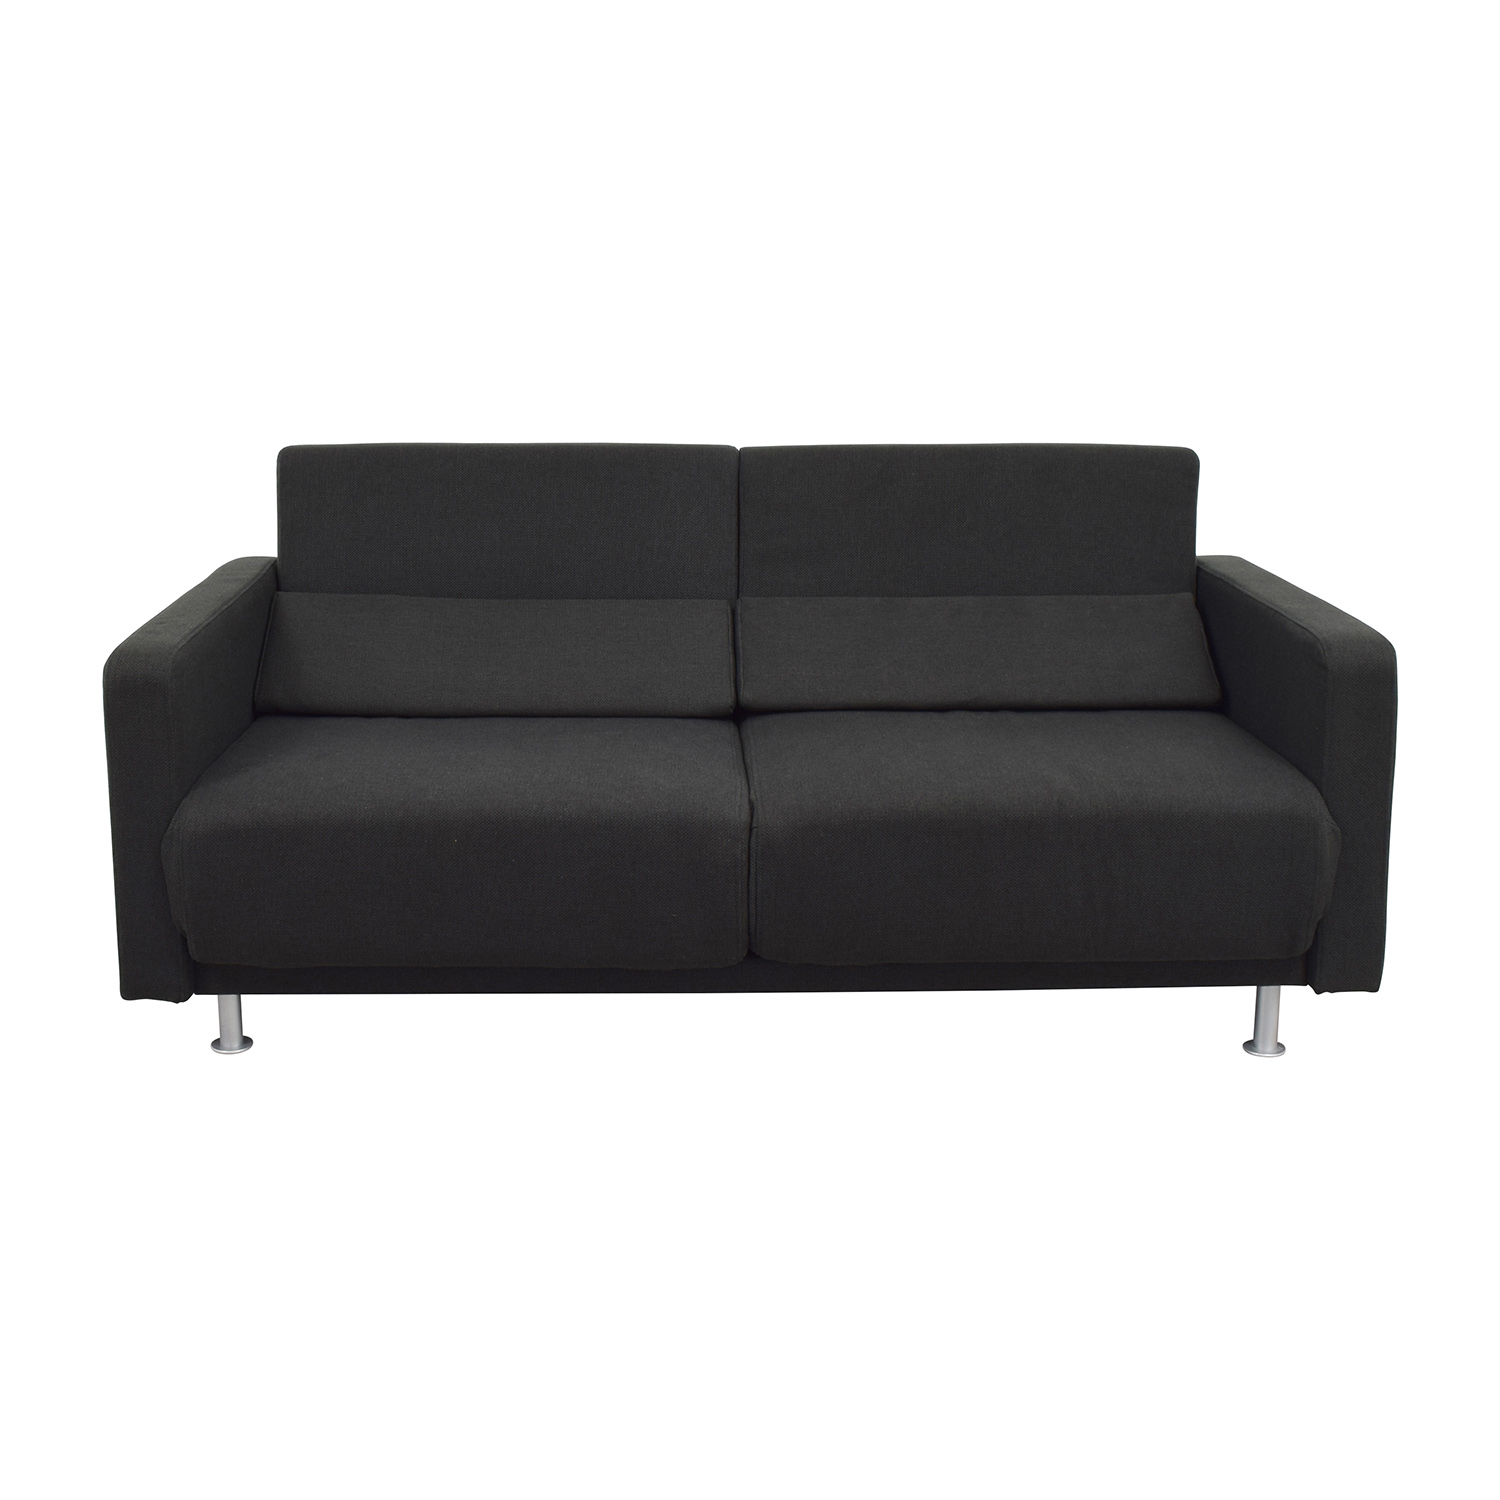 knislinge sofa idhult black review modern office set designs leather sven charme tan sofas article